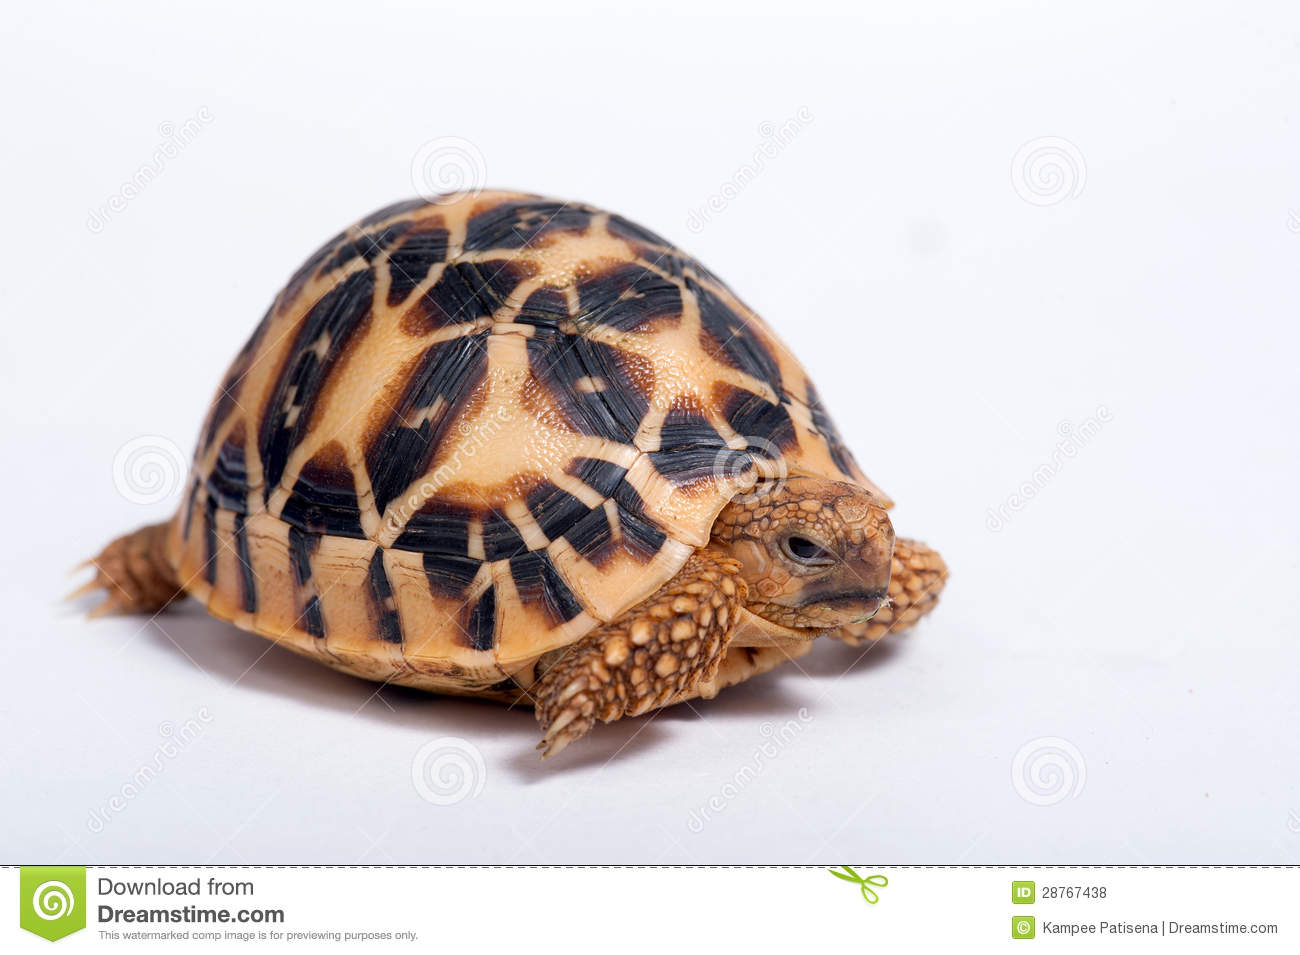 Indian Star Tortoise clipart #20, Download drawings